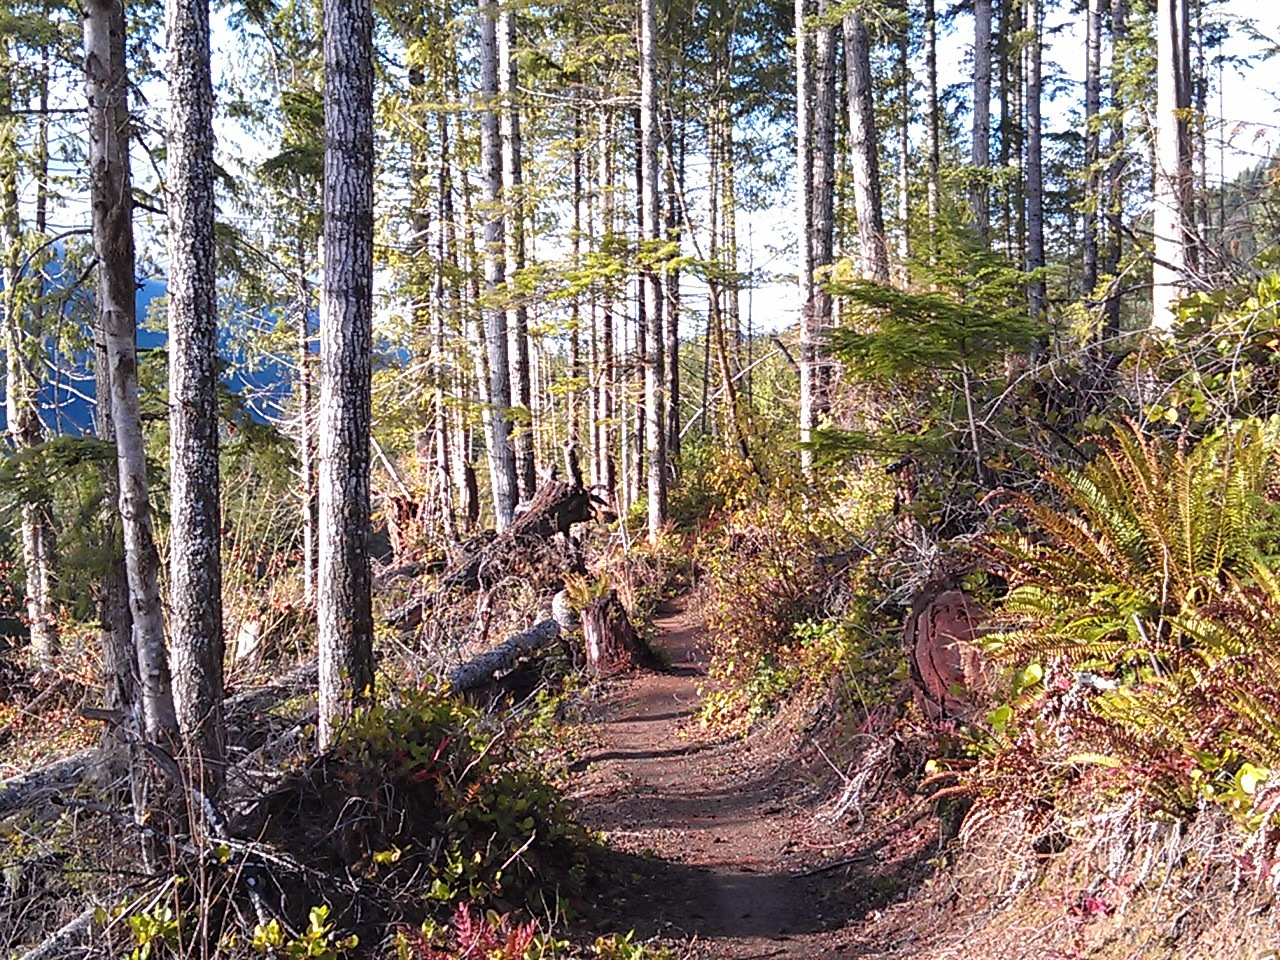 USA North-west/Olympic NP, Olympic Discovery Trail, Clearcuts mean sun, Walkopedia